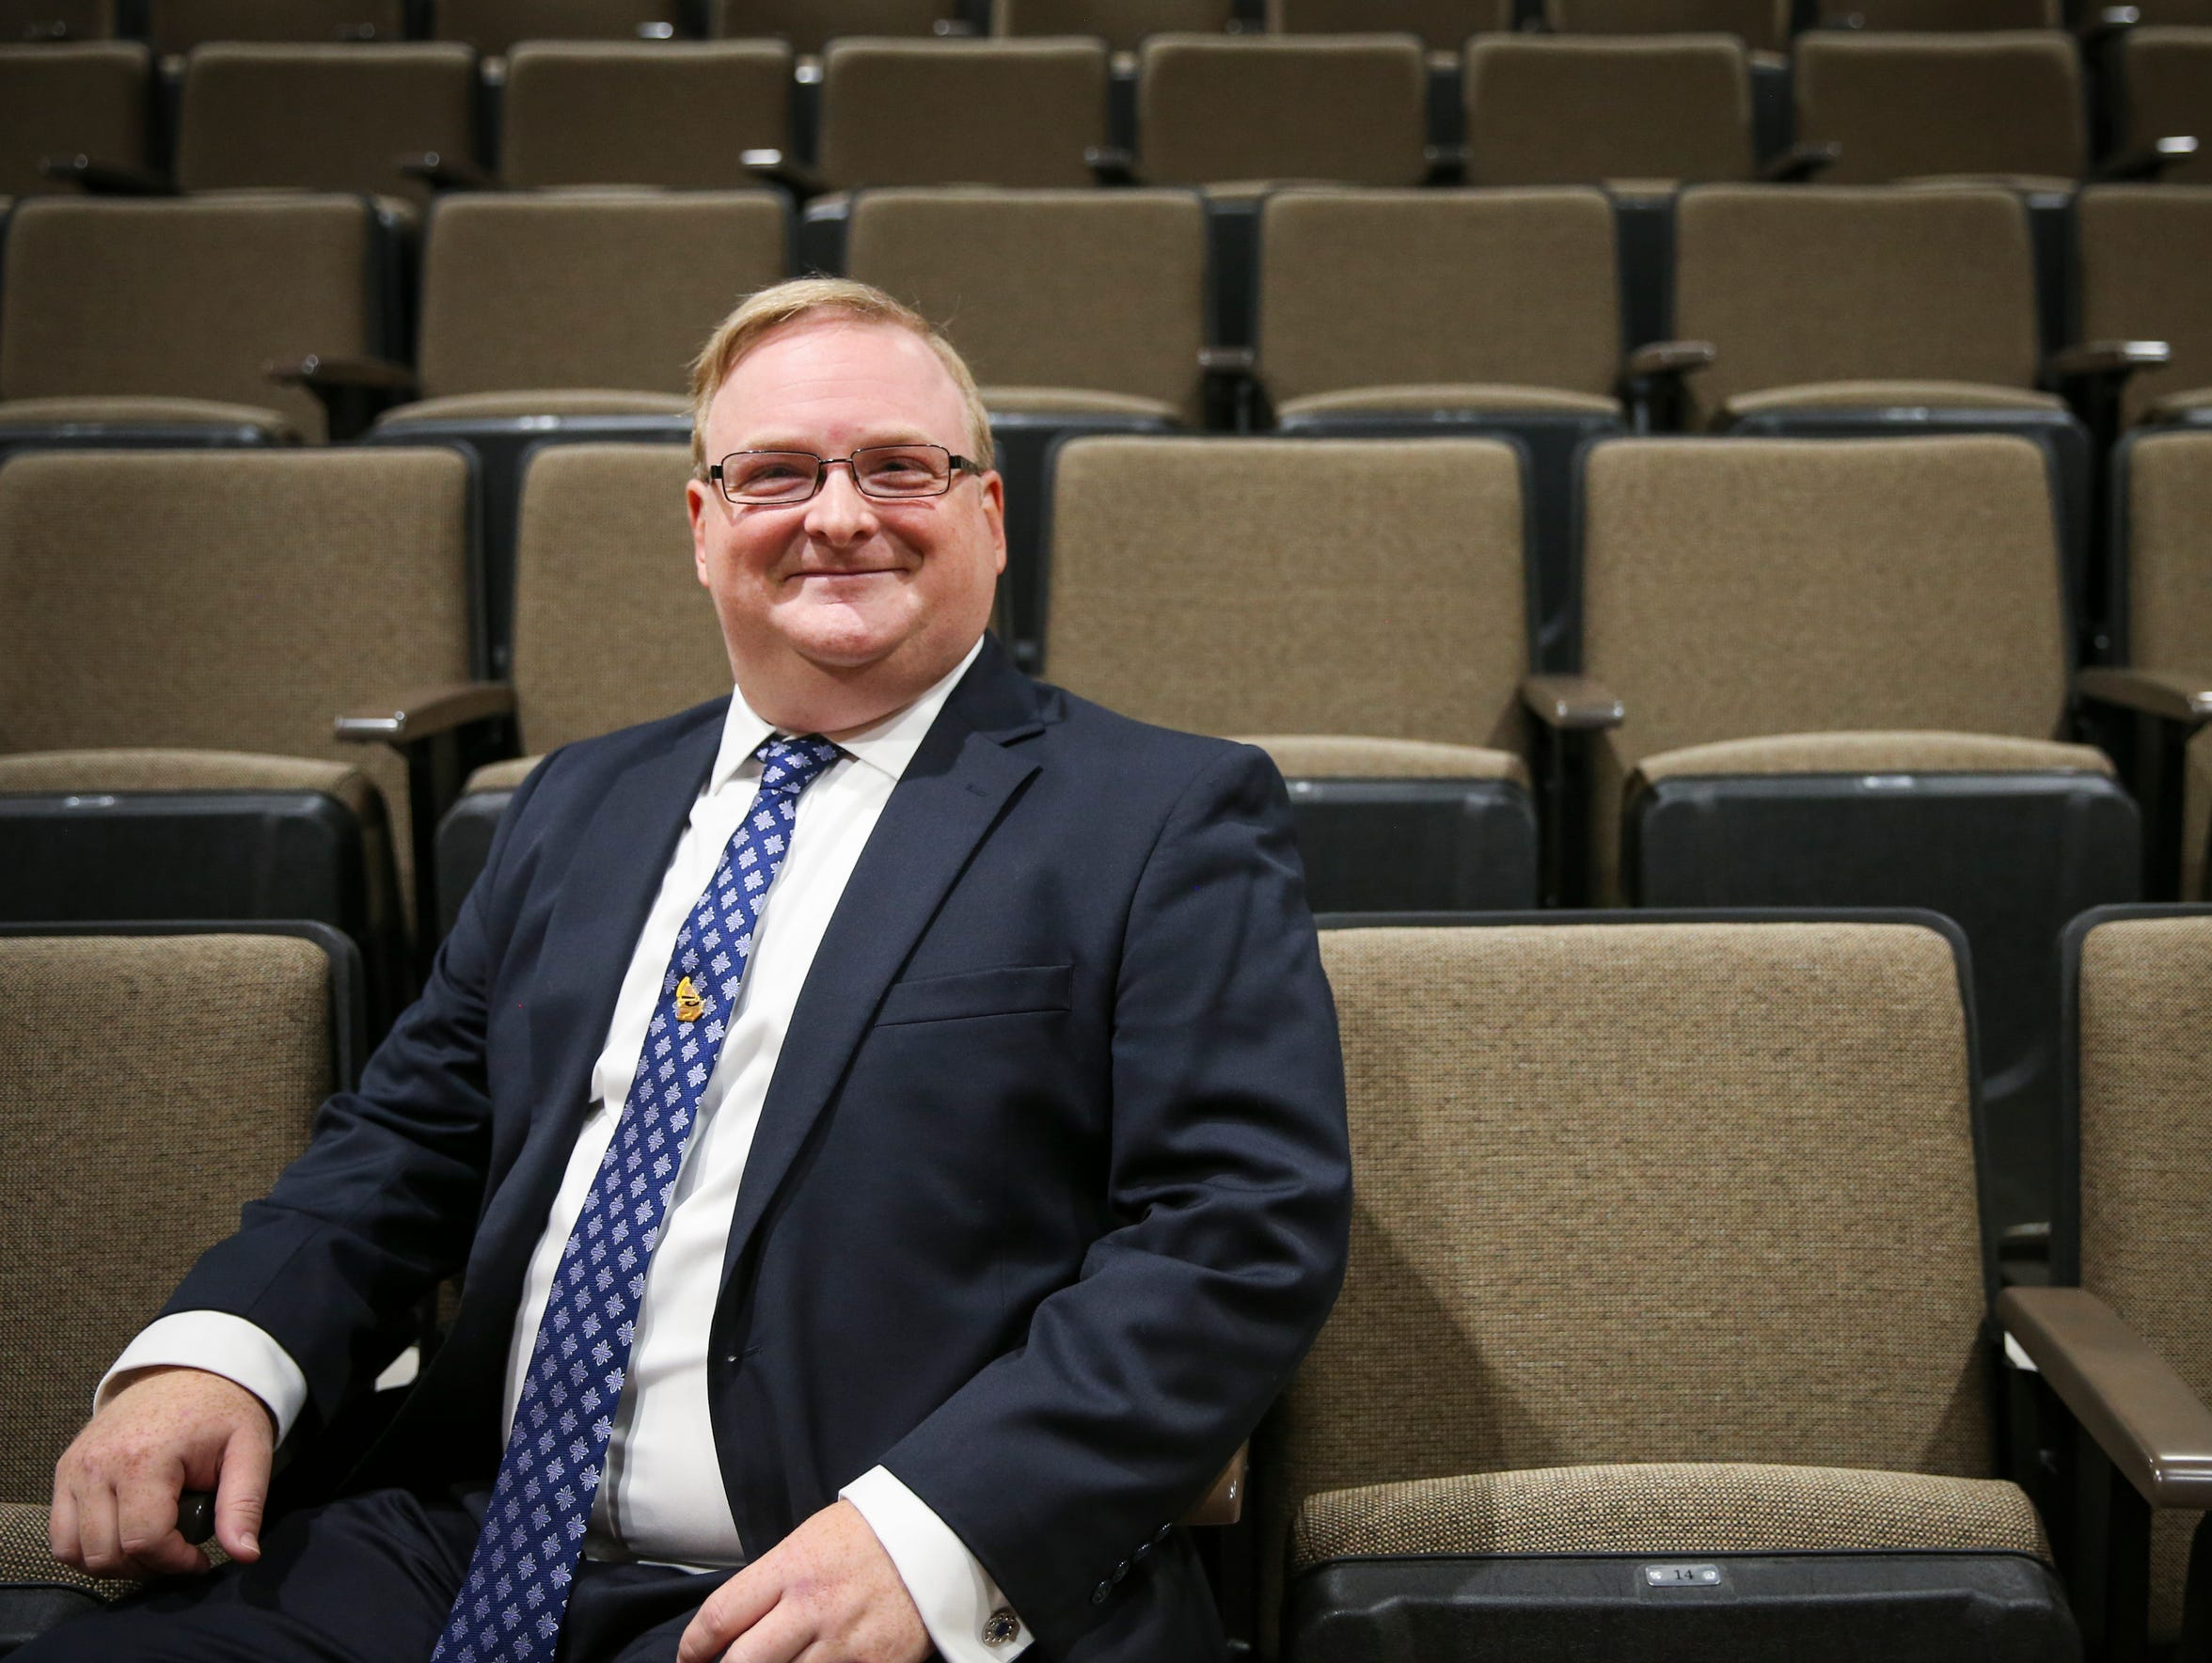 Stephens Performing Arts Center executive director